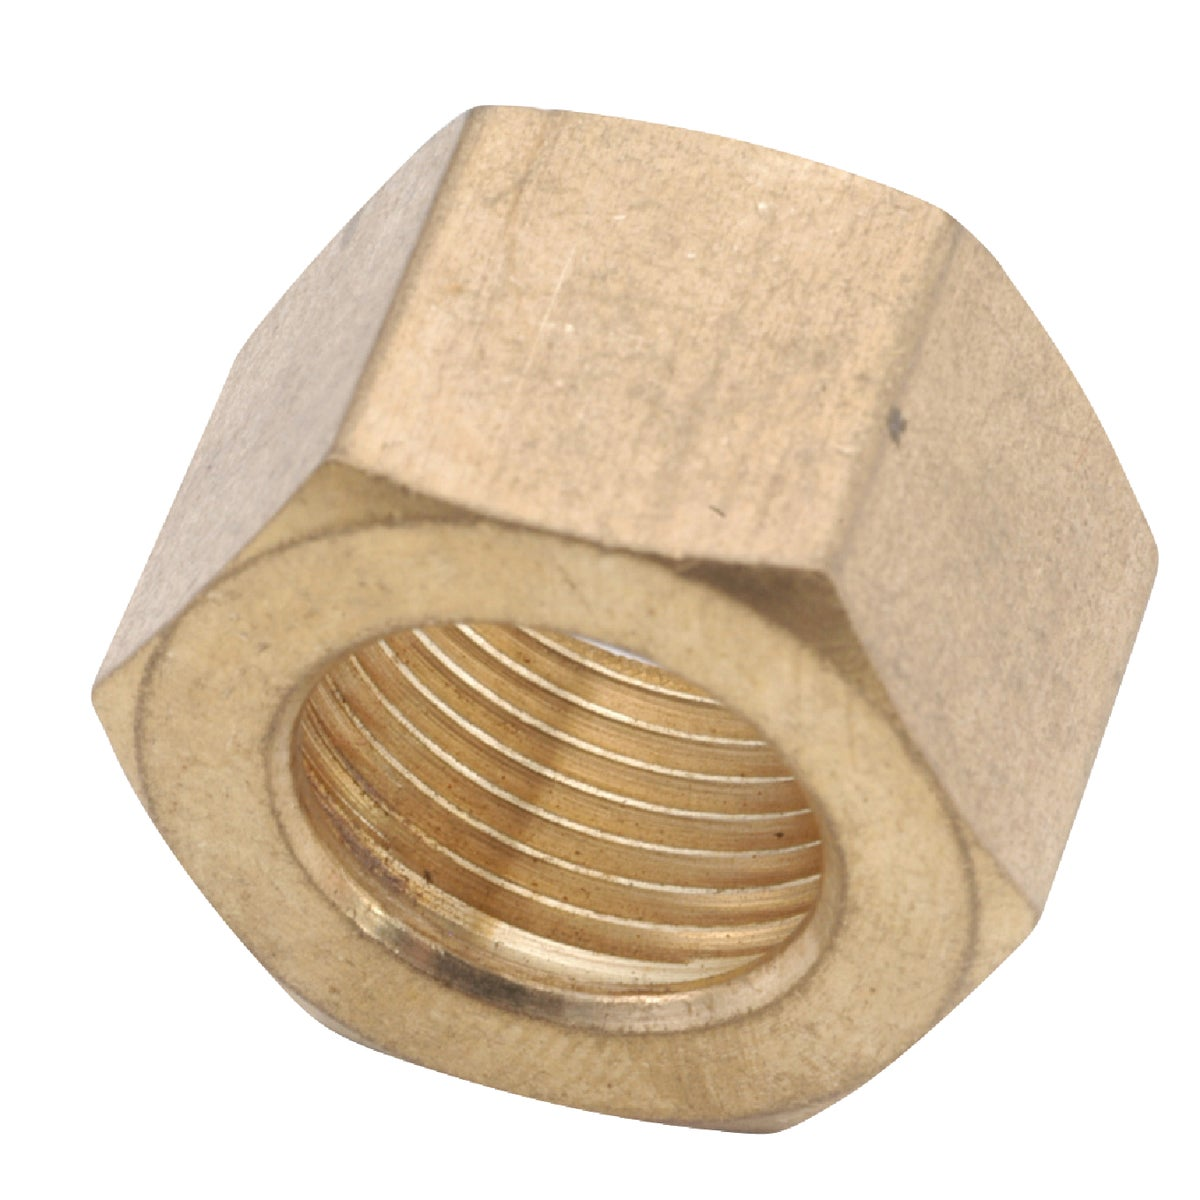 "3/8"" COMPRESSION NUT - 30051-06 by Anderson Metals Corp"